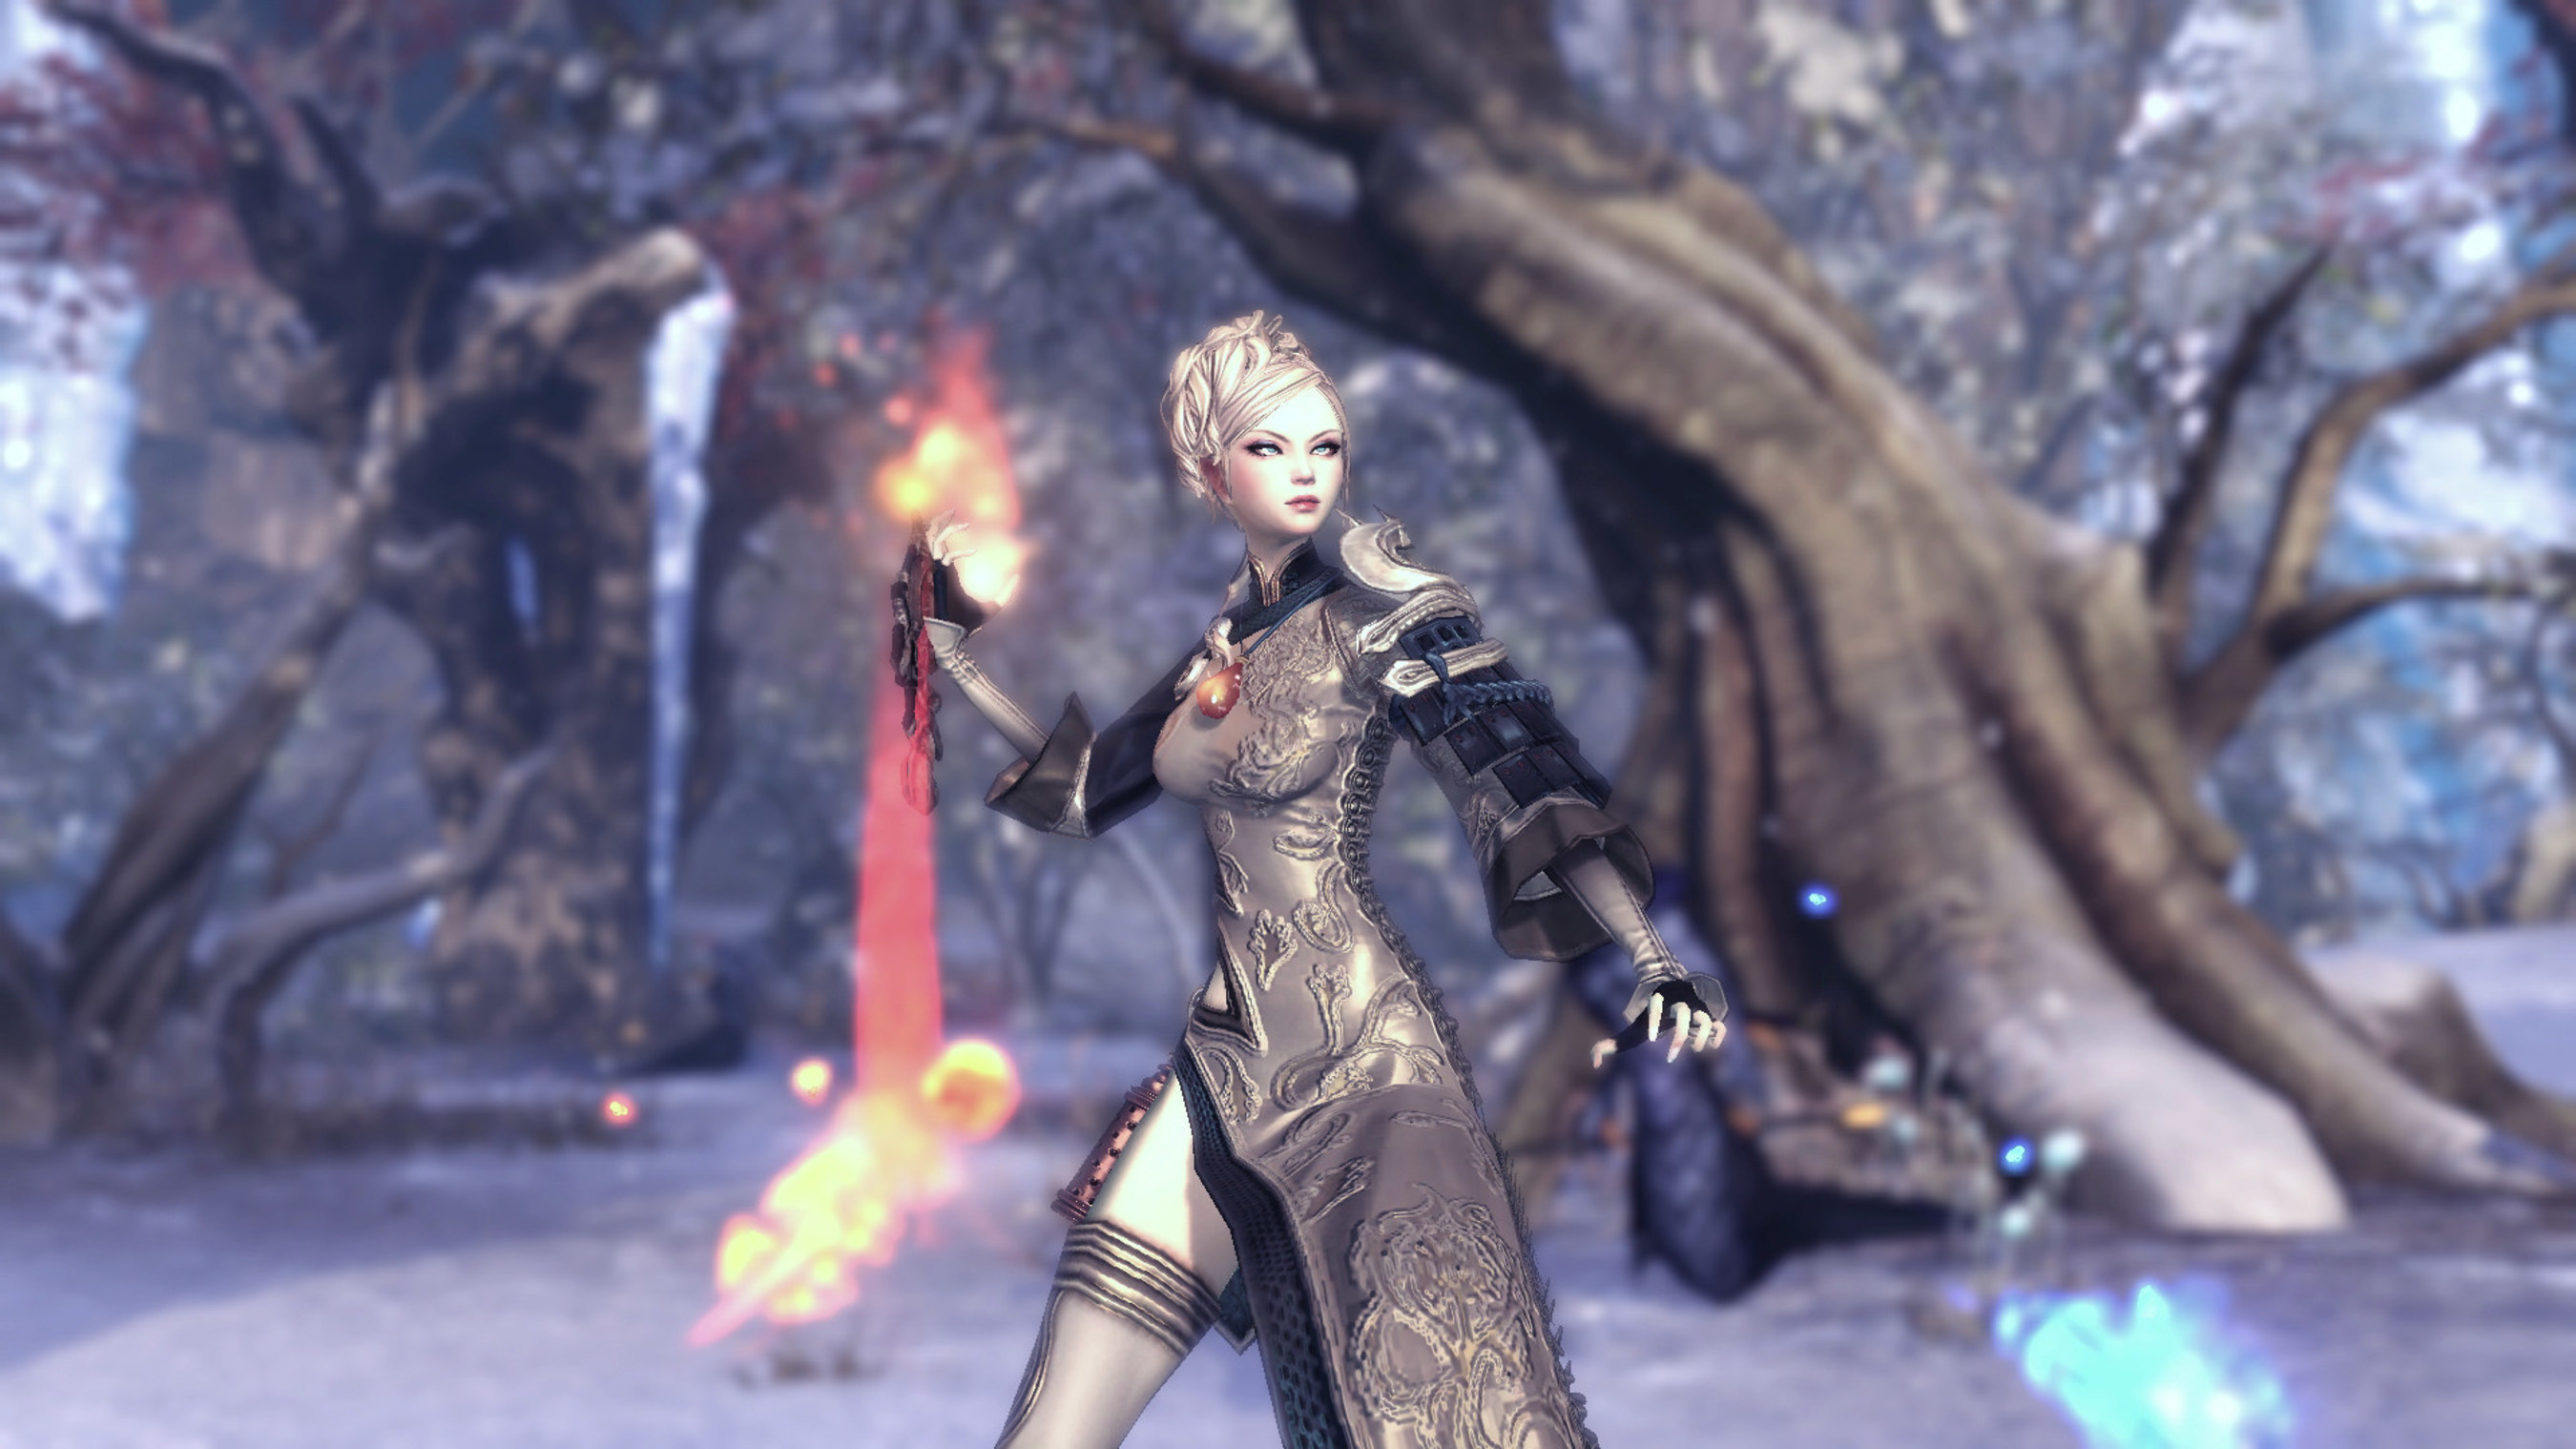 NCSOFT(R) Announces Blade & Soul(R) to launch in North America and Europe this Winter. Blade & Soul is a game unlike any other, set in an Asian, mythological world where fast-paced combat collides with the visual beauty of a Far-East martial arts massively-multiplayer online universe.